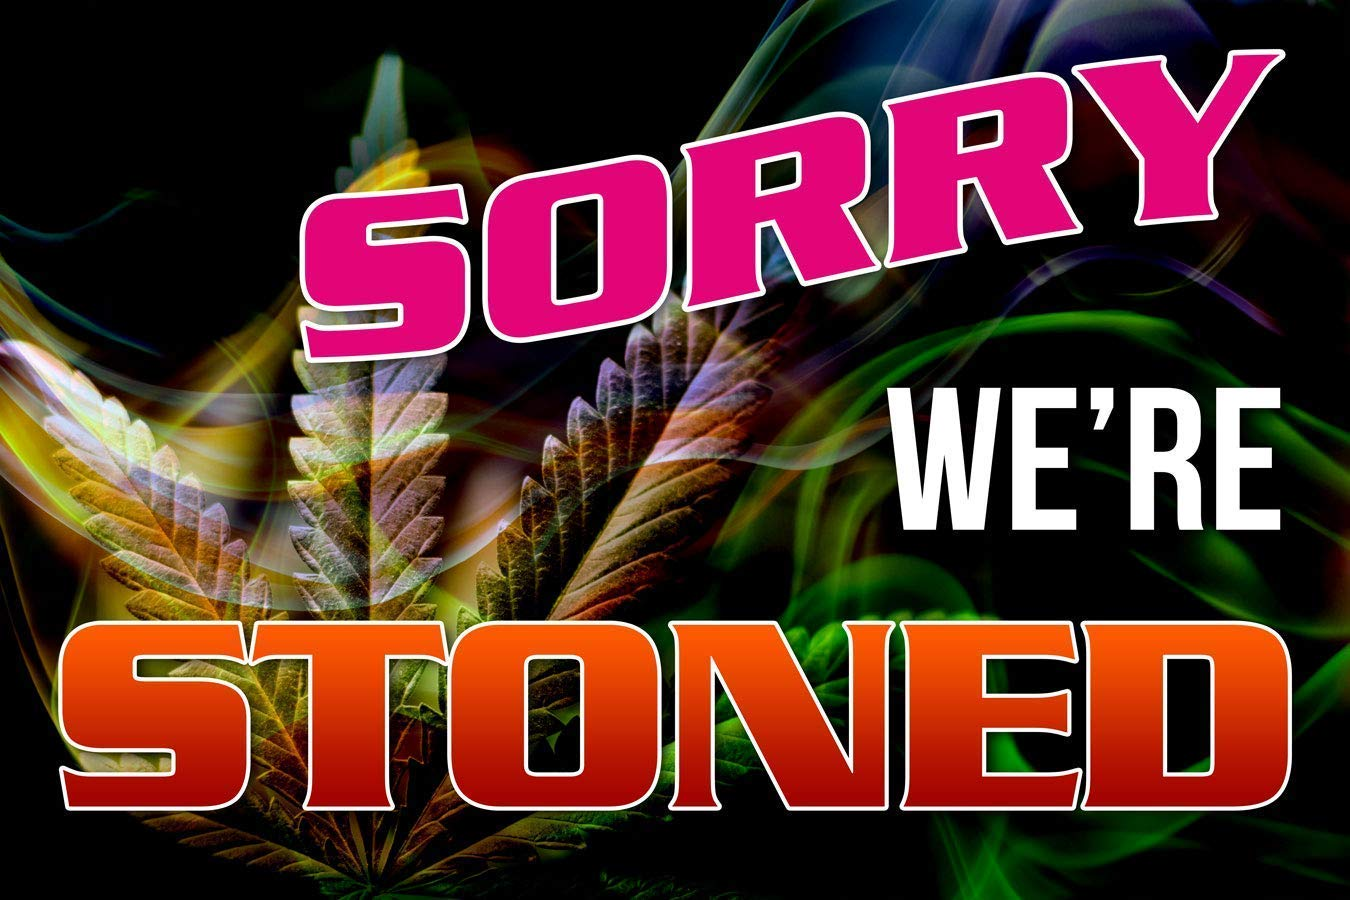 Sorry We are Stoned Poster